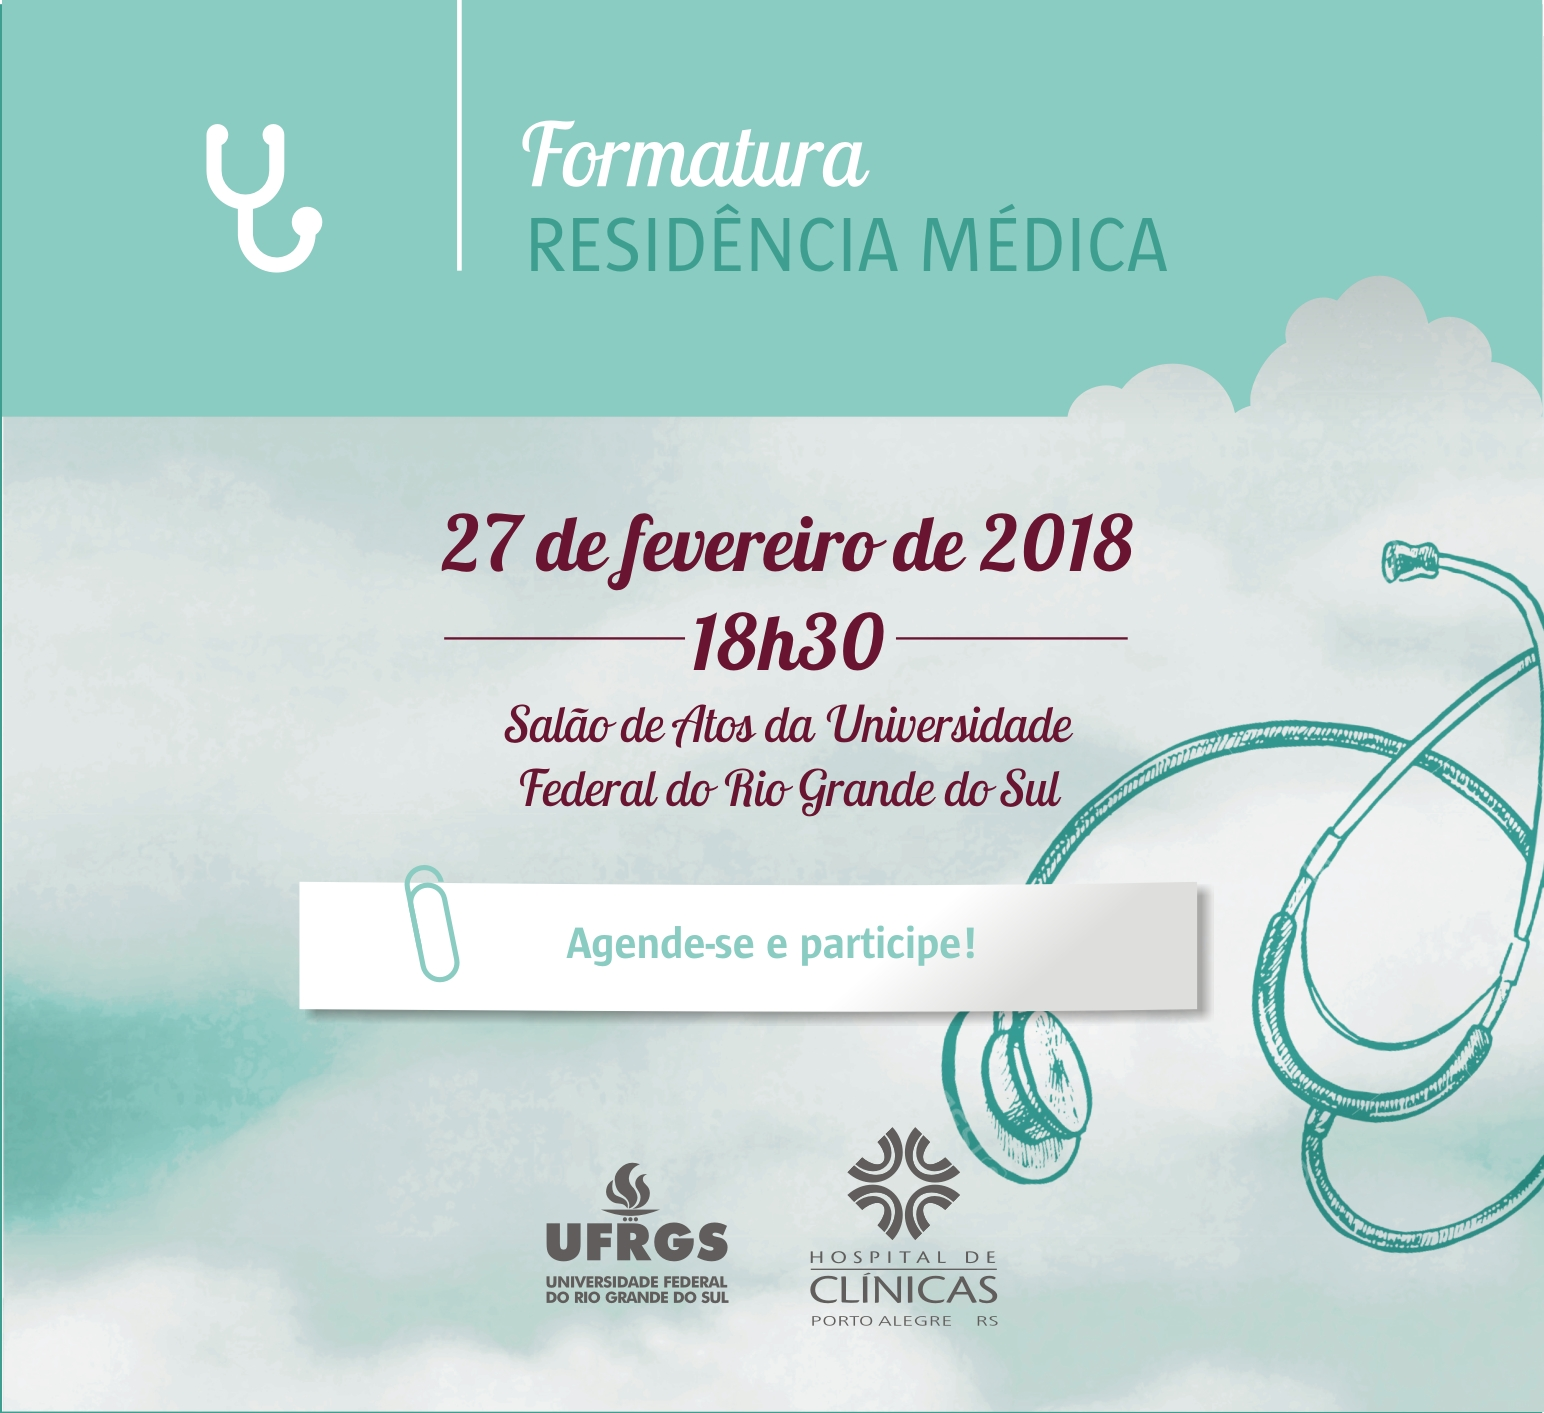 formatura medica save the date 2018